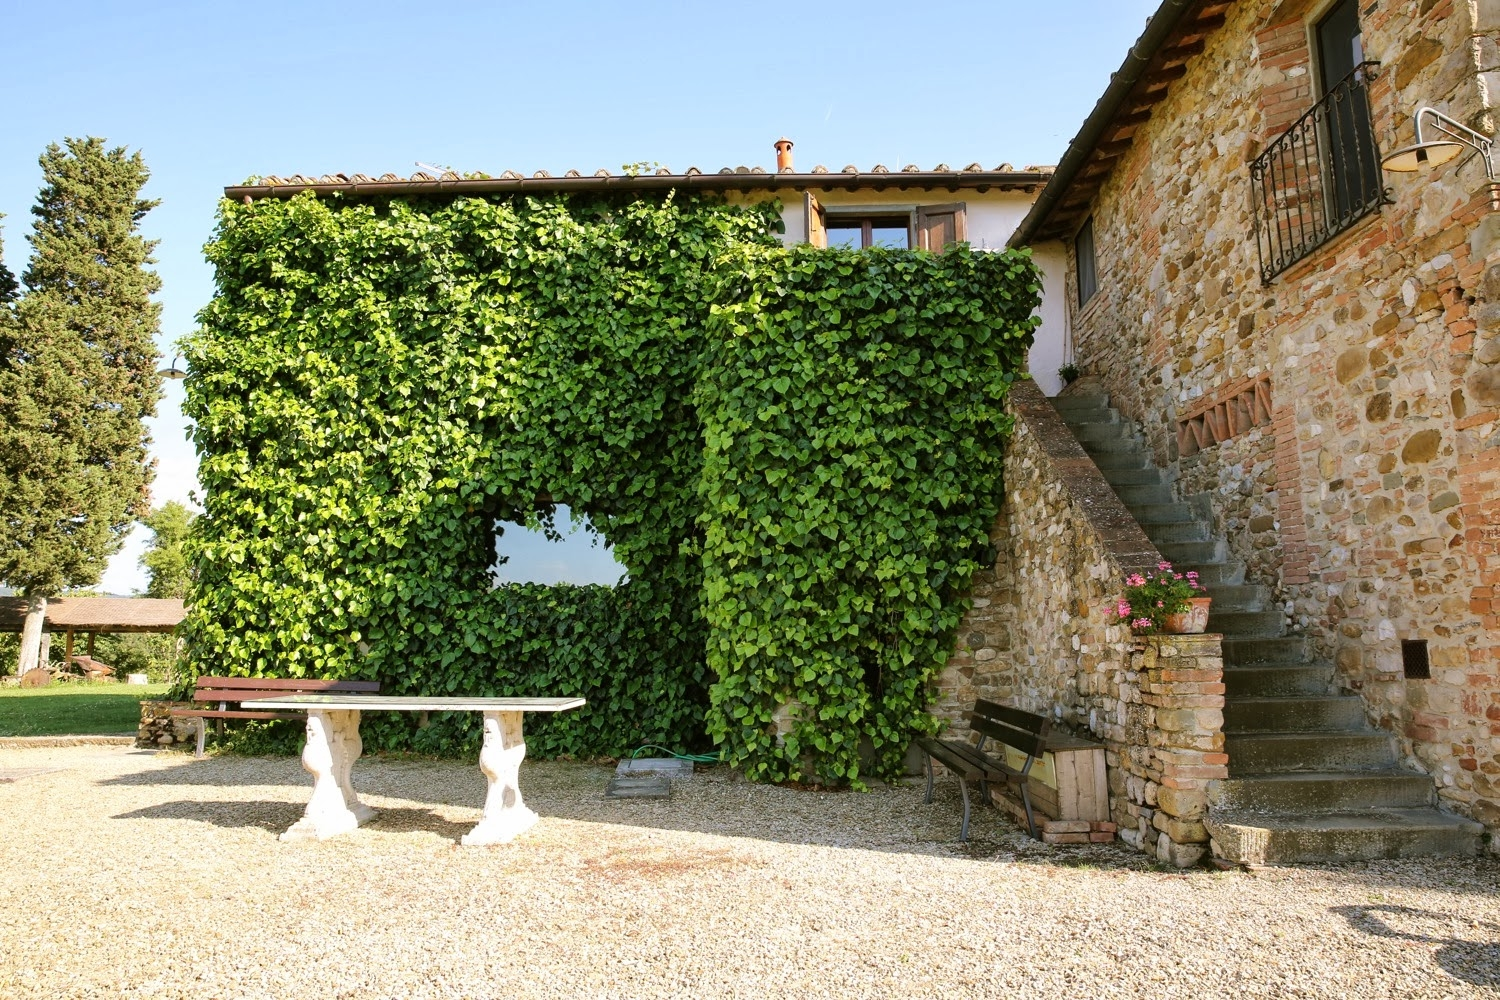 Fattoria La Loggia, Florence - A relaxed and rustic farmhouse surrounded by vineyards. Accommodation onsite for approximately 35 guests.Read More...